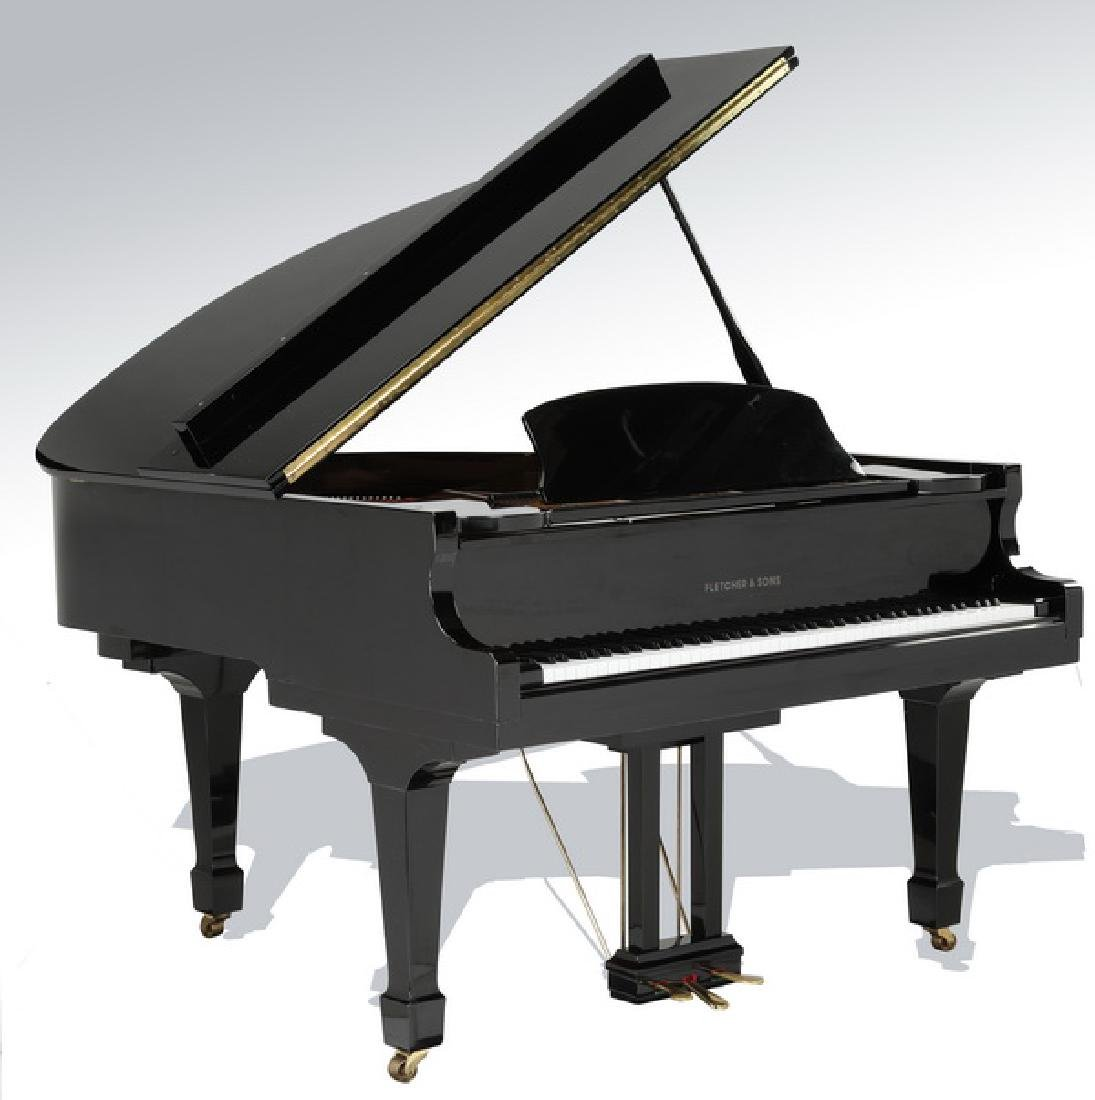 Fletcher & Sons baby grand piano w/ ebony finish